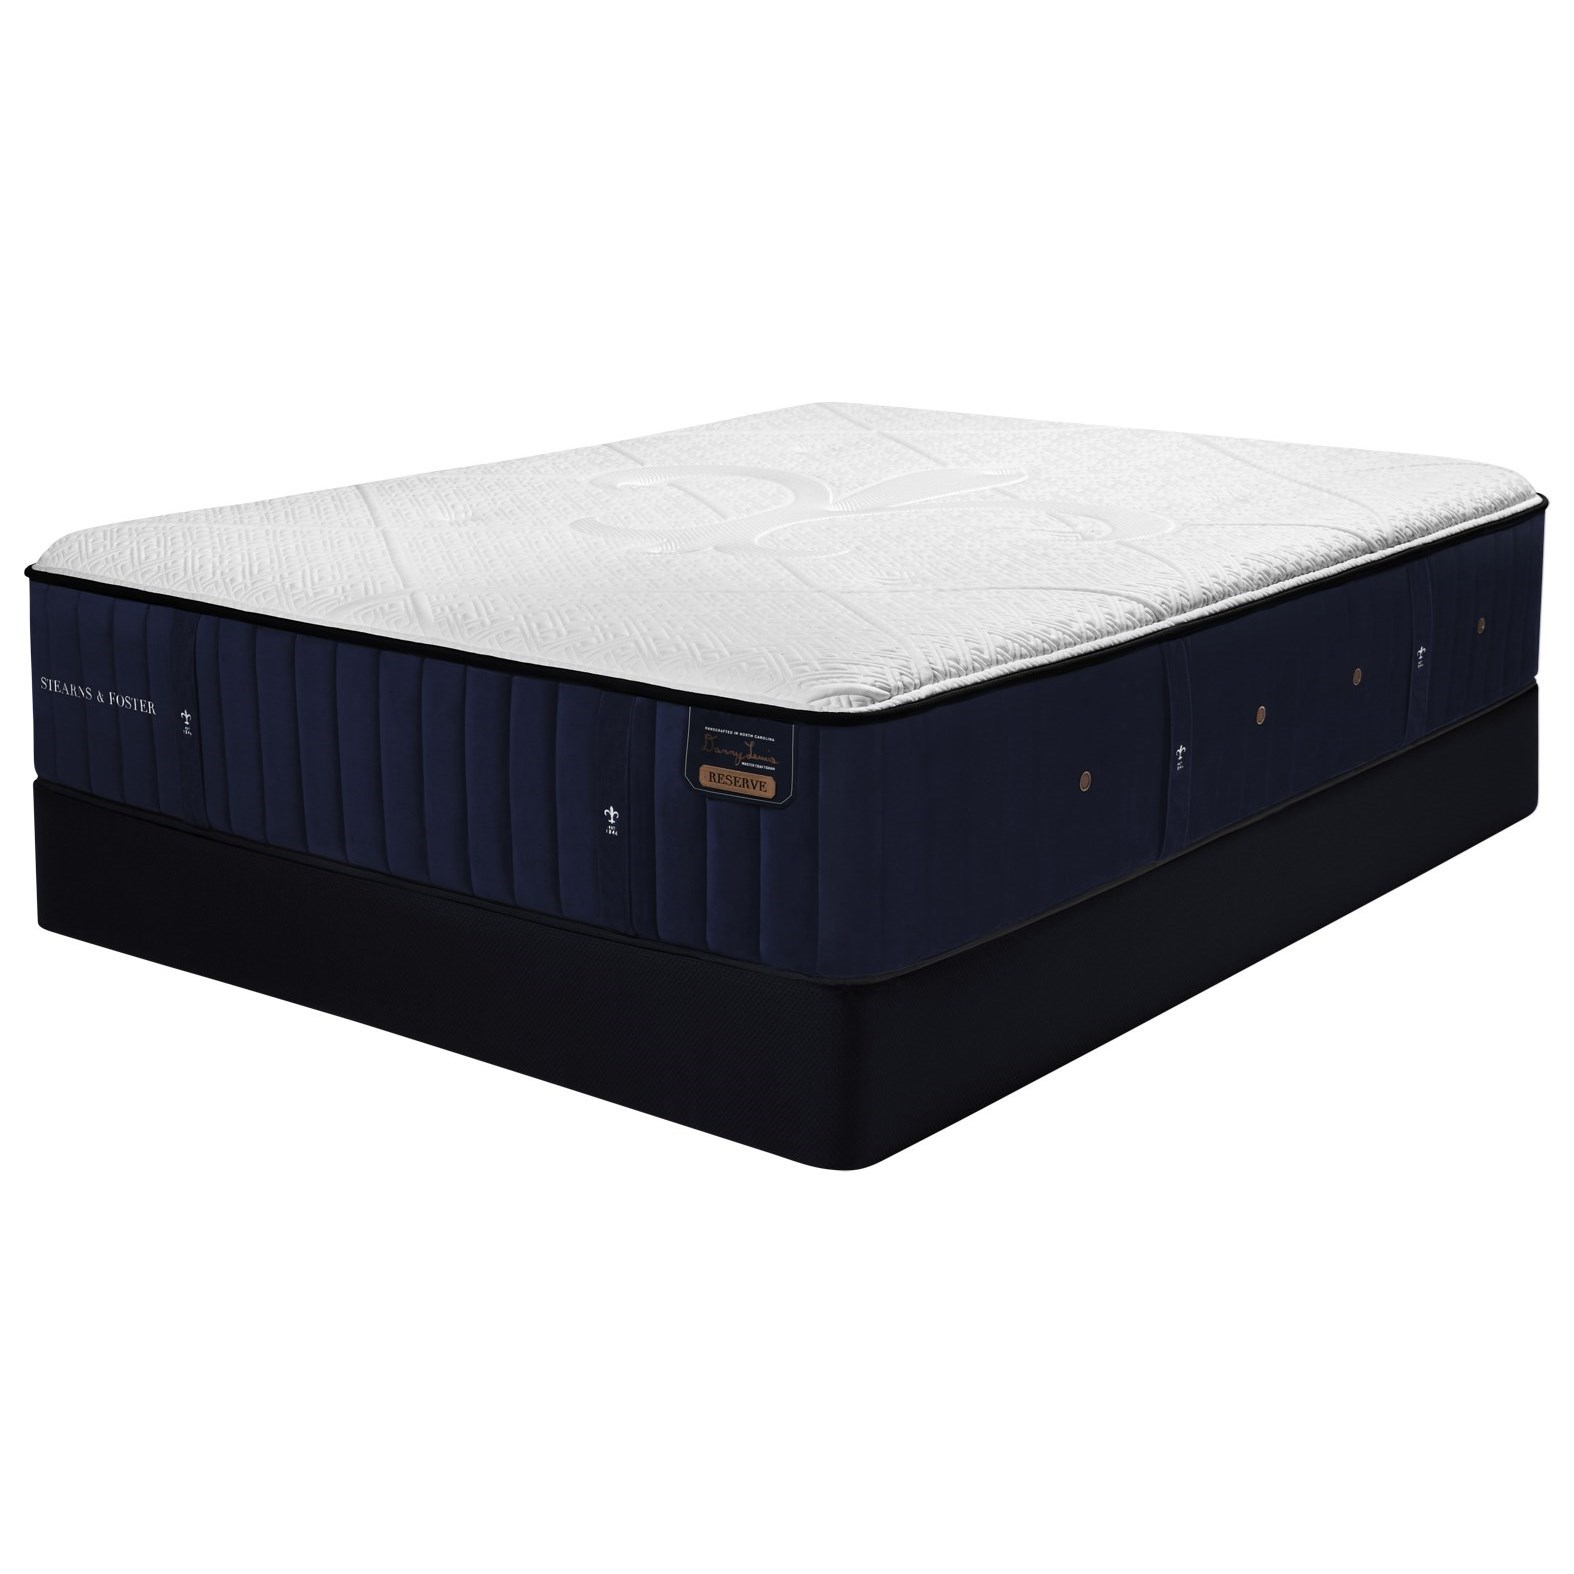 "Hepburn RE2 Luxury Firm TT Cal King 15"" Premium Mattress Set by Stearns & Foster at Morris Home"